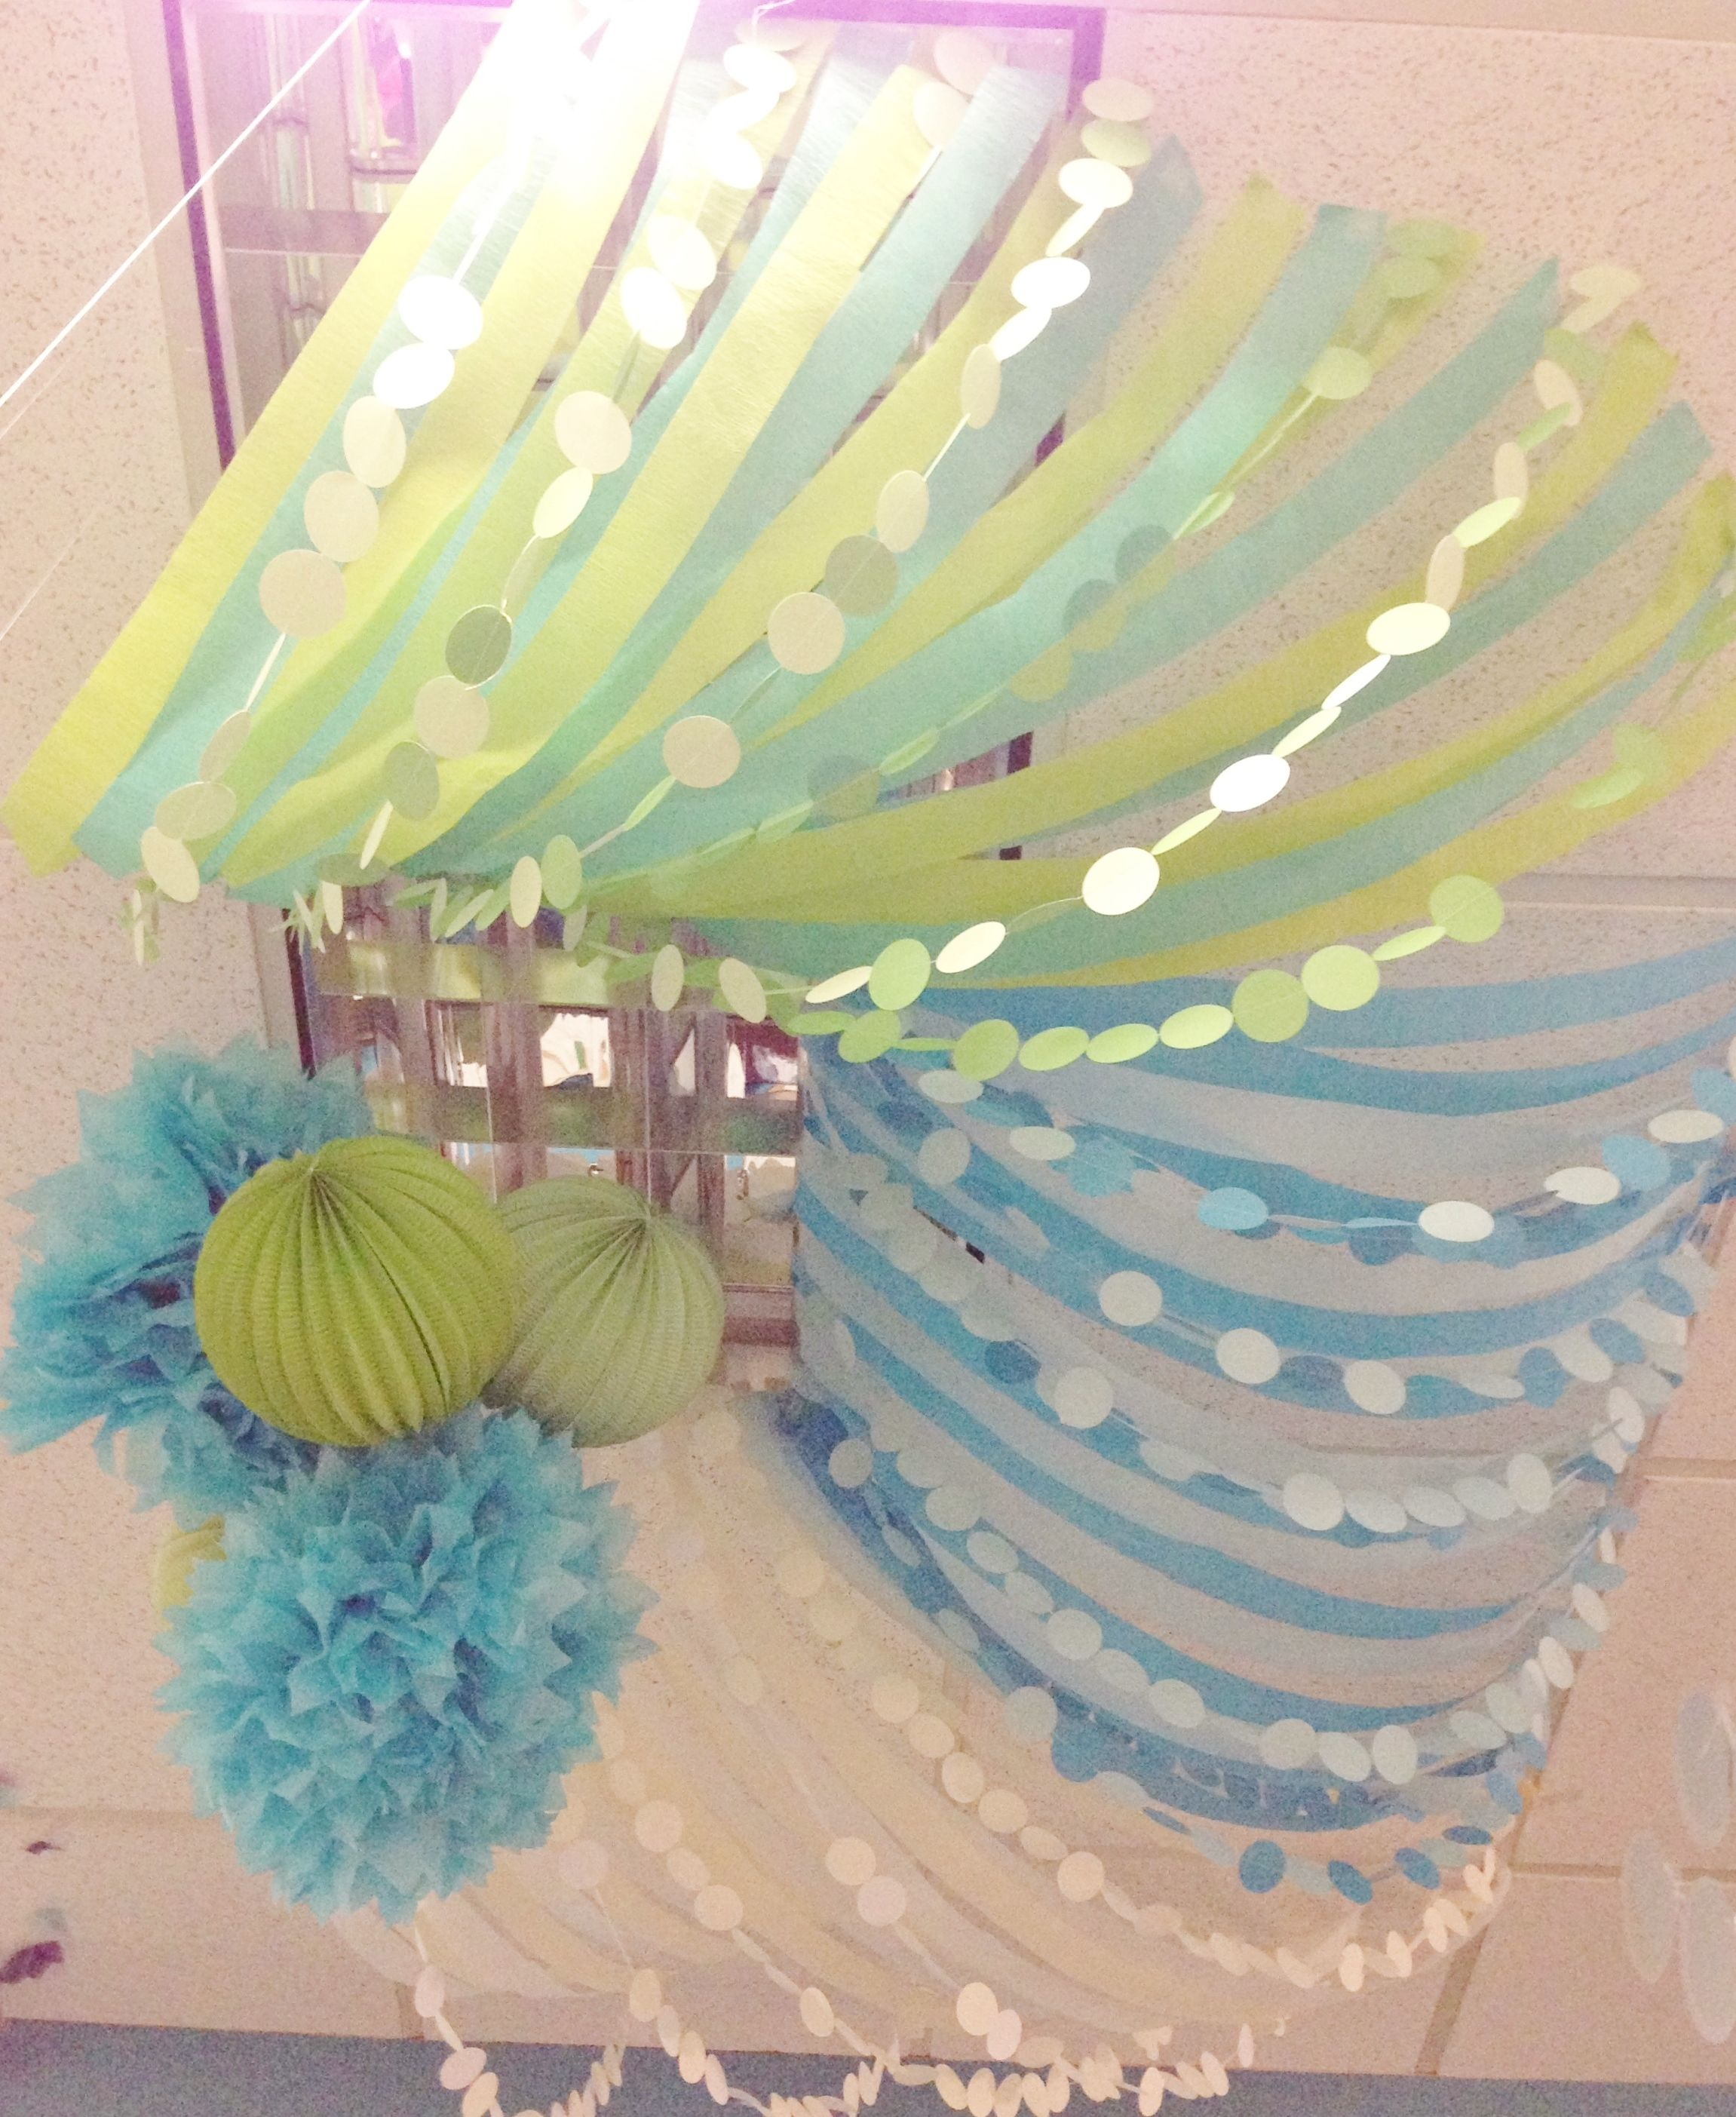 Colorful Streamers For Ceiling Decorations Great Birthday Decoration Idea Diy Party Decorations Homemade House Decorations Balloon Decorations